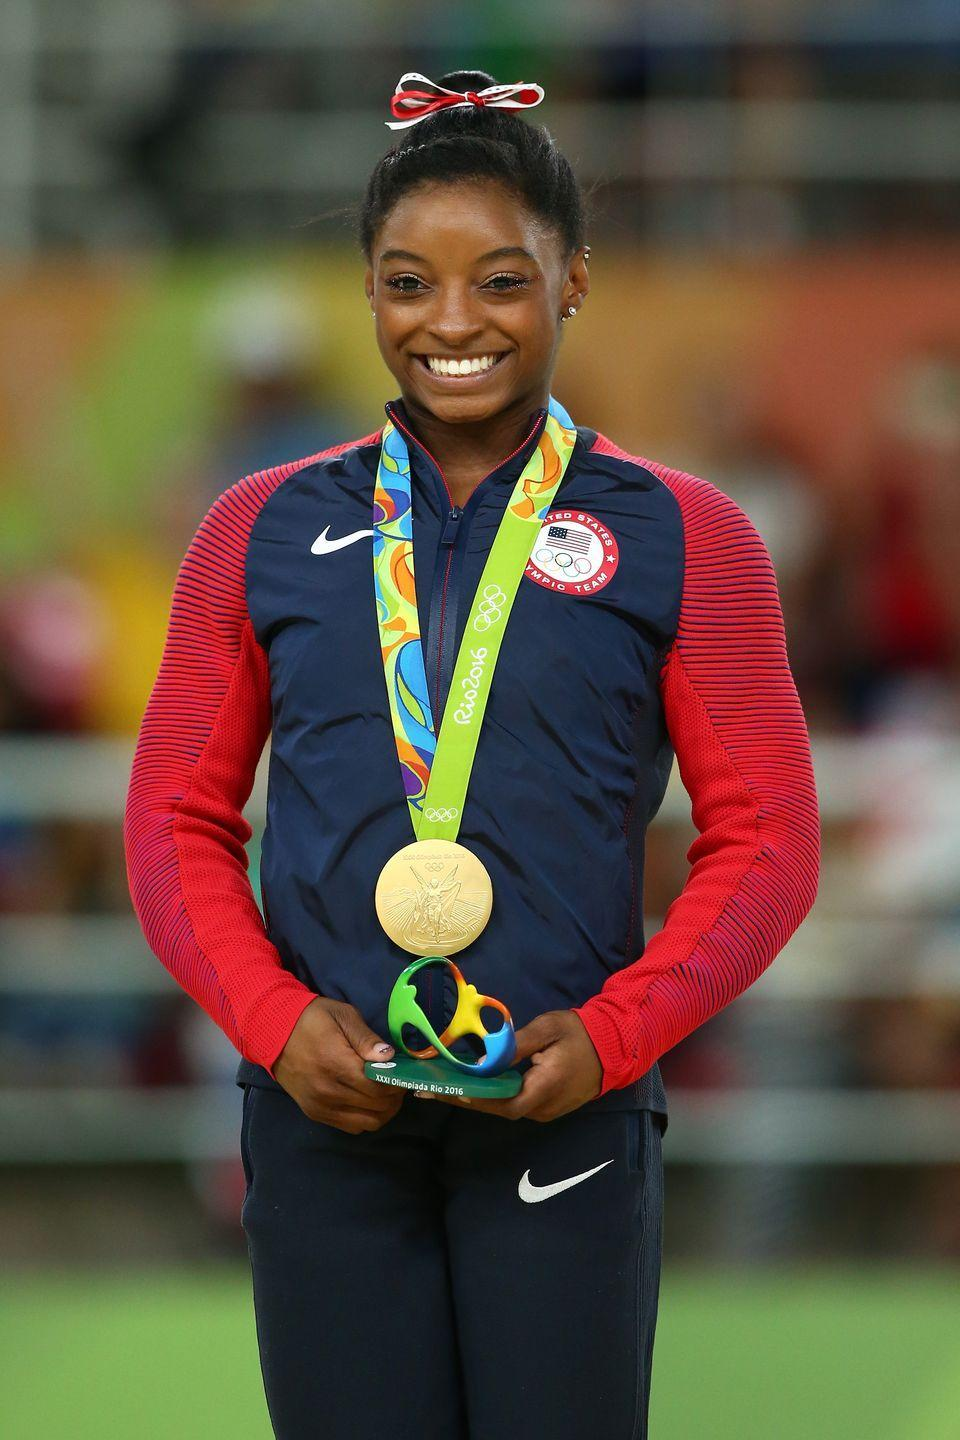 """<p>Back in 2016, NBC gymnastics commentator Al Trautwig <a href=""""https://www.huffpost.com/entry/simone-biles-clears-up-an-adoption-misconception-in-8-simple-words_n_57ac9704e4b06e52746f723a"""" data-ylk=""""slk:refused to acknowledge"""" class=""""link rapid-noclick-resp"""">refused to acknowledge</a> the Olympic gold medalist's adoptive parents as her parents.</p><p>Speaking to <em><a href=""""https://www.usmagazine.com/celebrity-news/news/simone-biles-responds-to-nbc-commentators-parents-comment-w433788/"""" rel=""""nofollow noopener"""" target=""""_blank"""" data-ylk=""""slk:Us Weekly"""" class=""""link rapid-noclick-resp"""">Us Weekly</a> </em>about the comment, Simone said, """"I personally don't have a comment ... My parents are my parents and that's it.""""</p><p>Simone's maternal grandfather, Ron Biles, and his wife, Nellie, adopted the athlete and her sister out of foster care.</p>"""